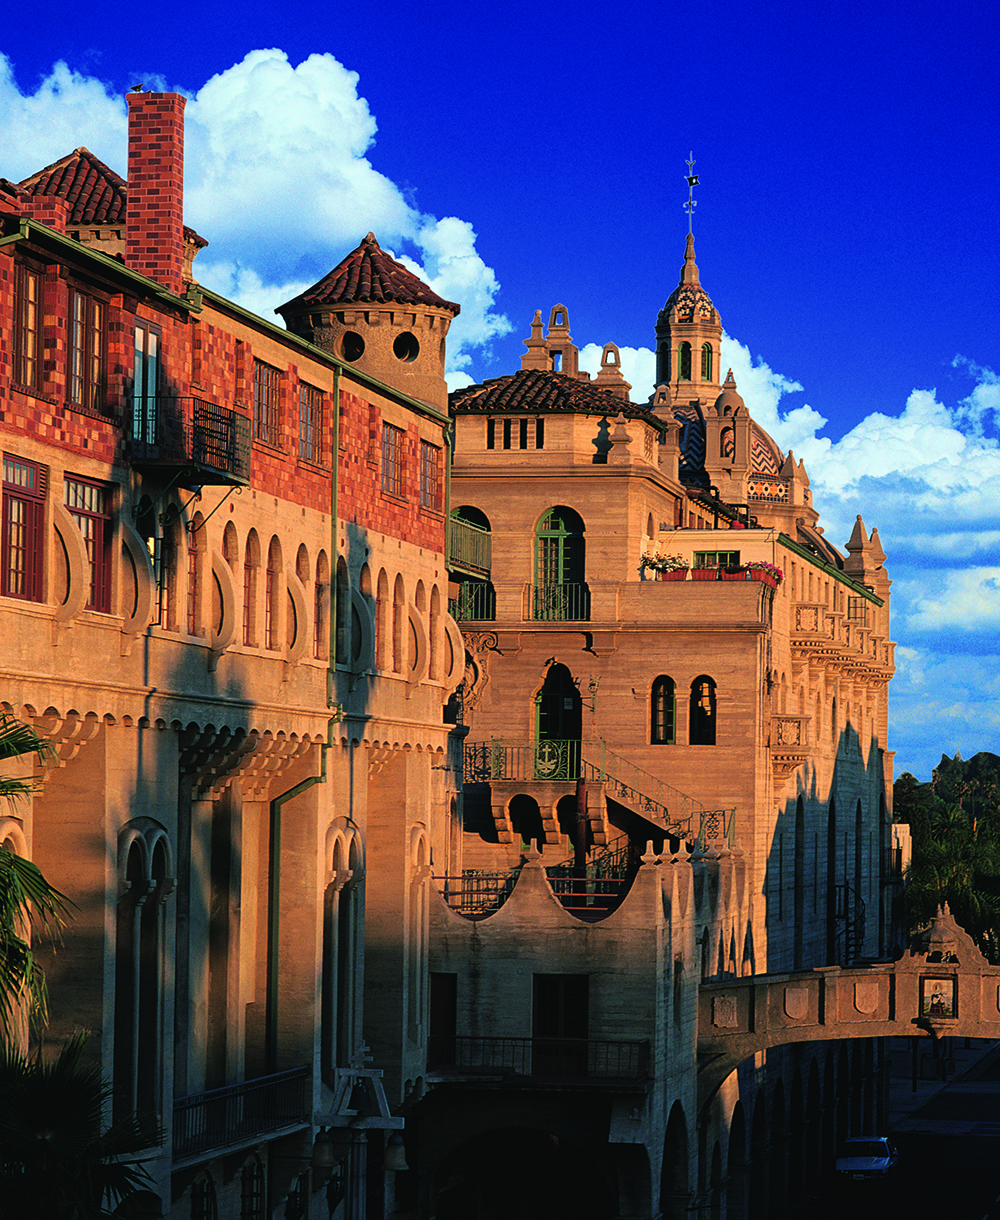 The historic Mission Inn Hotel & Spa in Riverside, CA, dates back to the late 1800s.